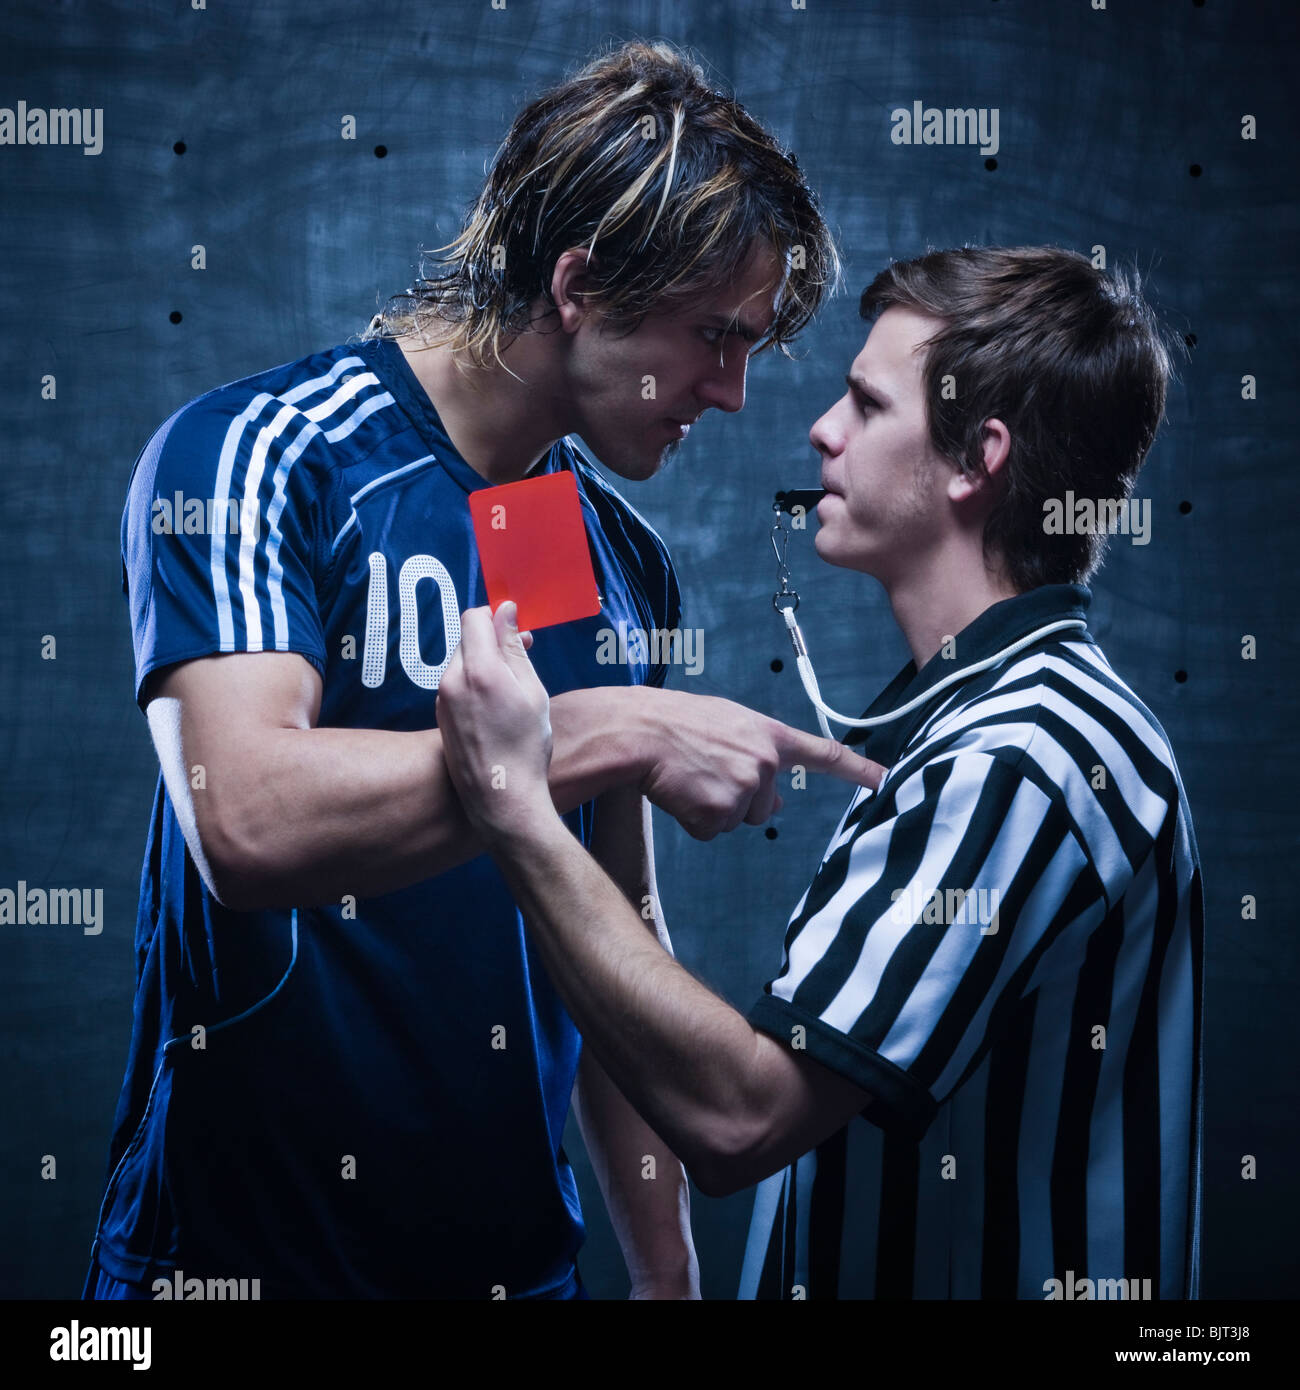 Studio shot of referee showing red card - Stock Image